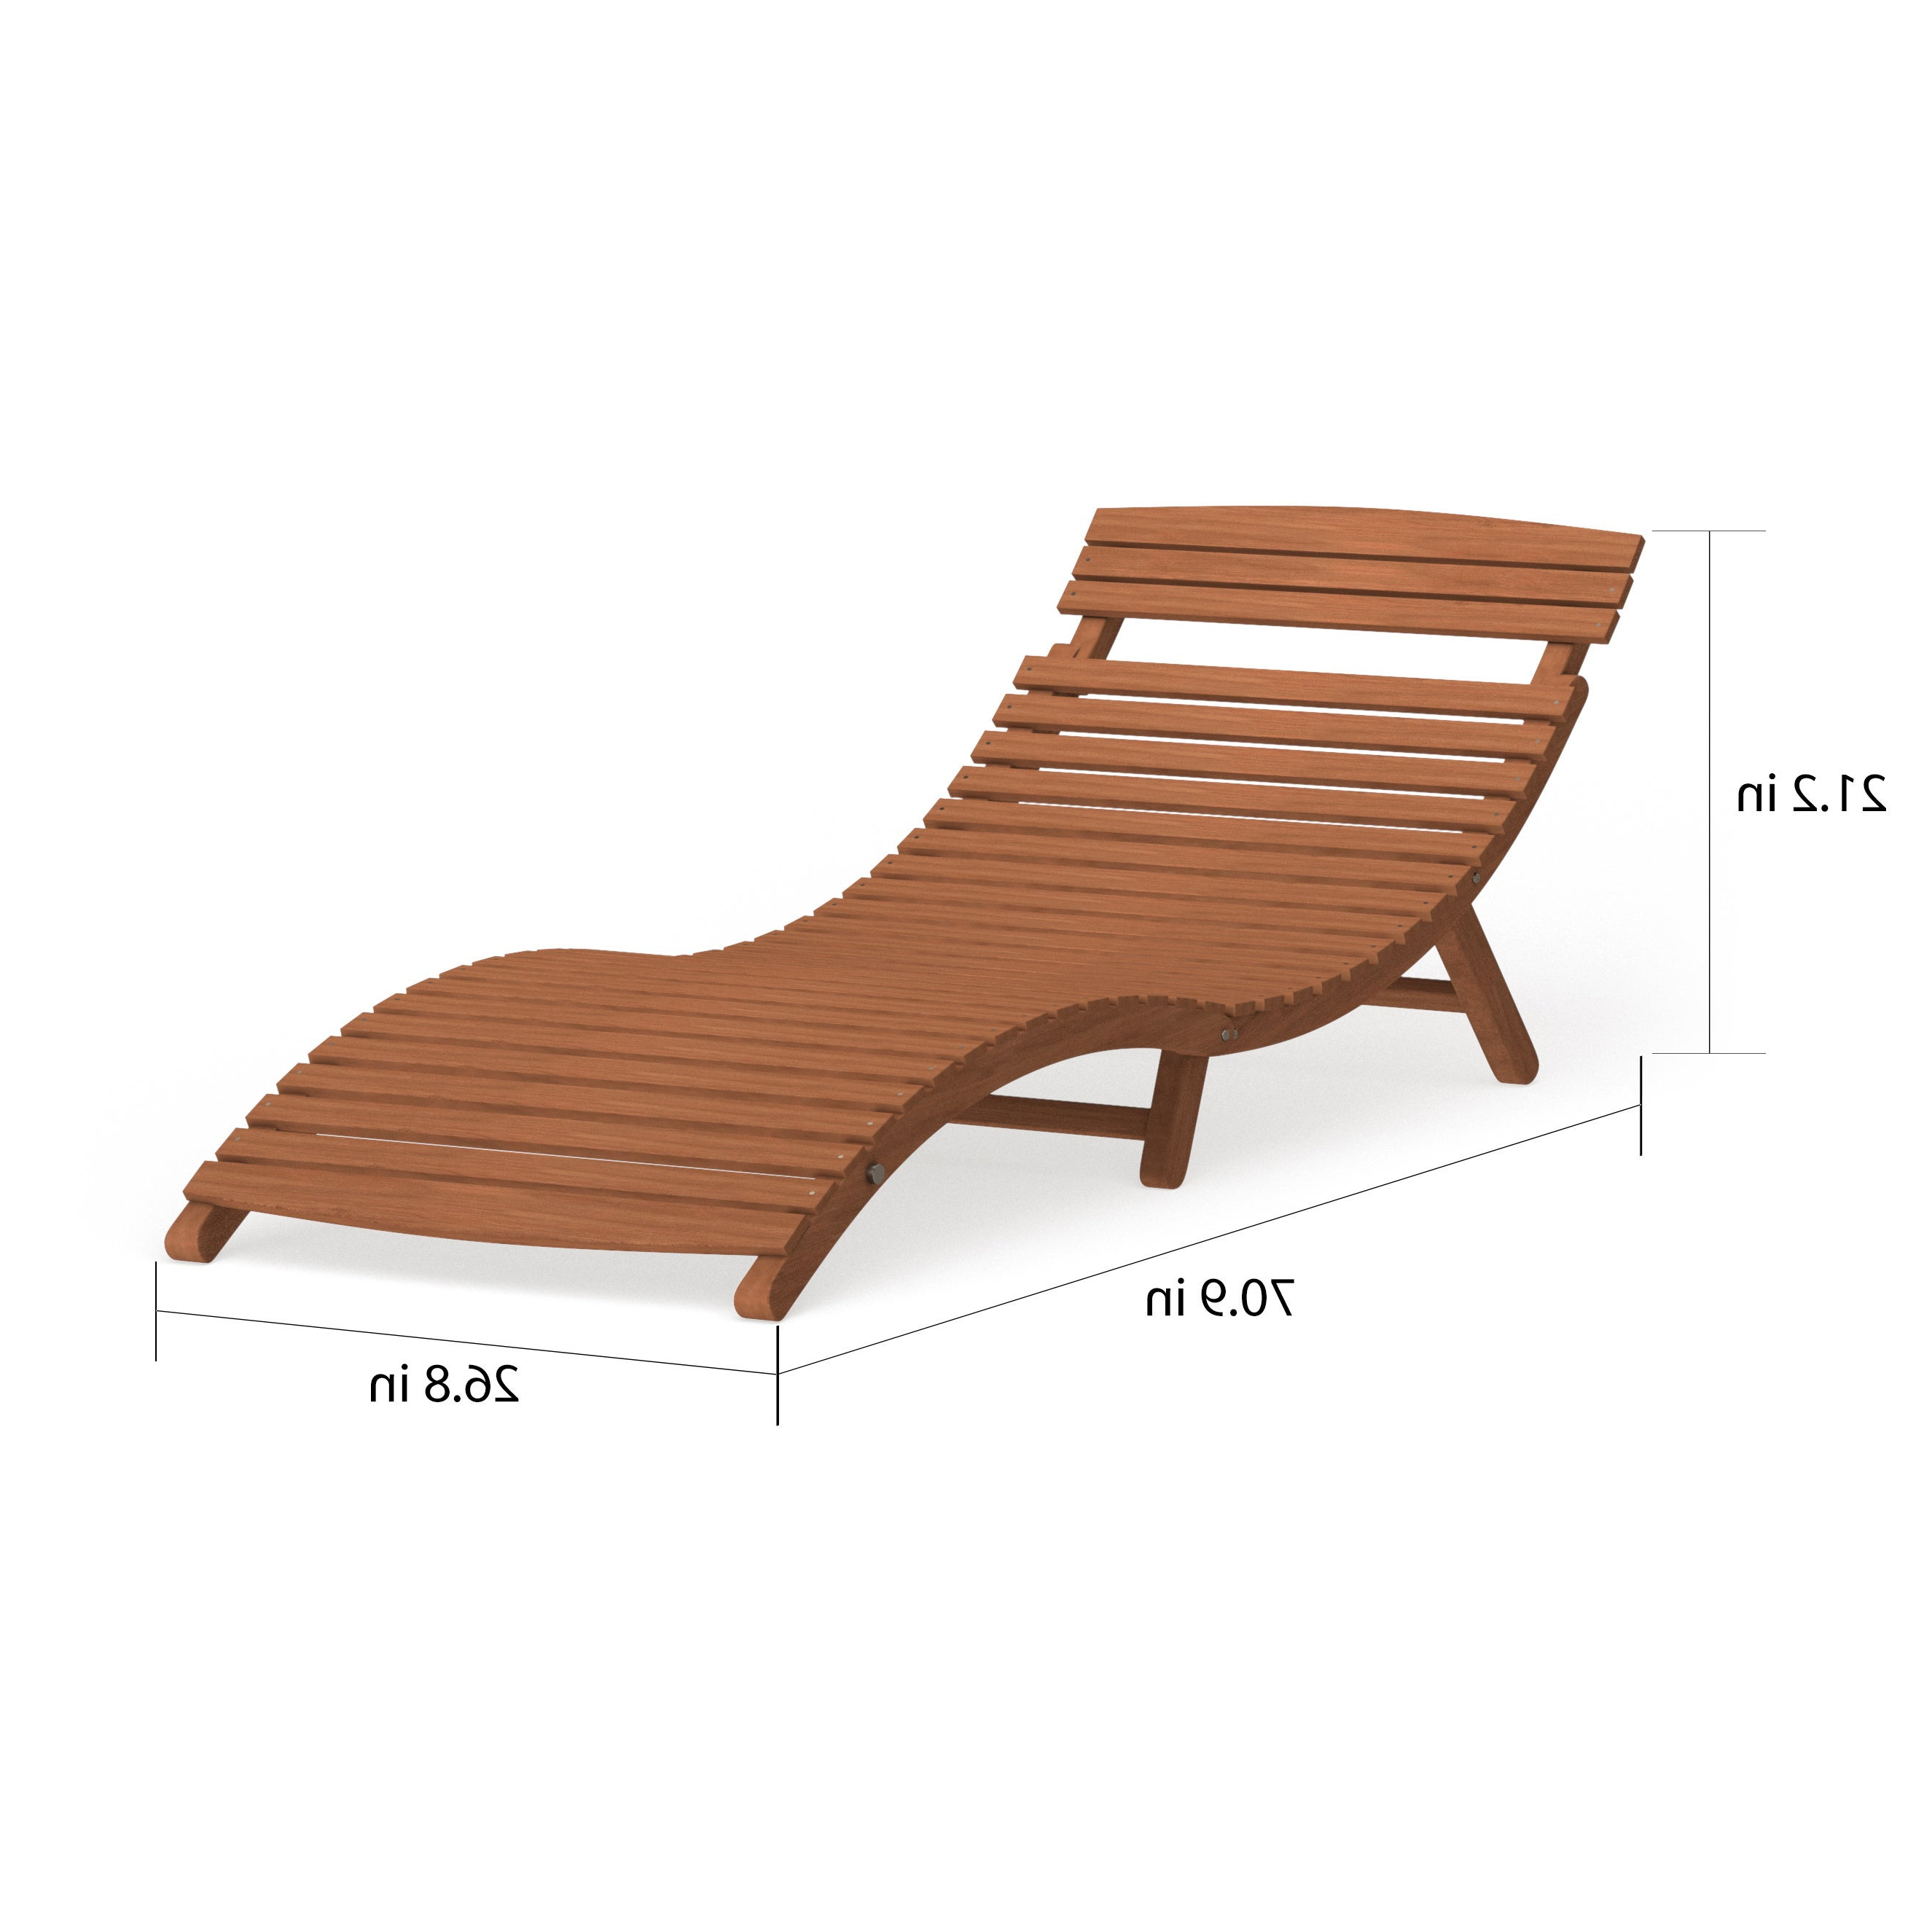 Havenside Home Shi Shi Curved Folding Chaise Lounger Regarding Most Popular Curved Folding Chaise Loungers (View 3 of 25)